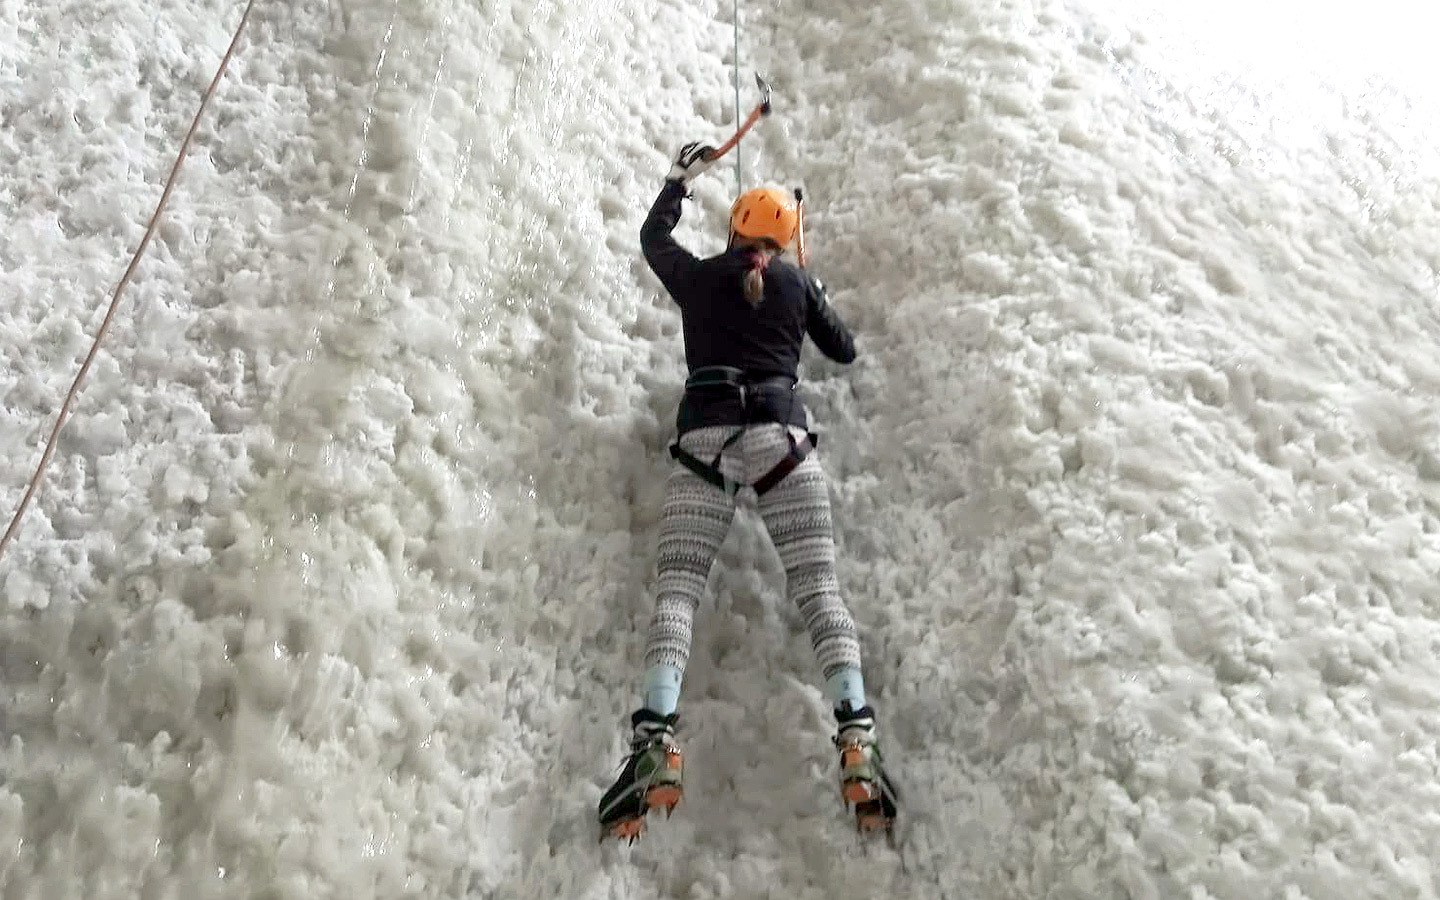 Ice climbing in Kinlochleven